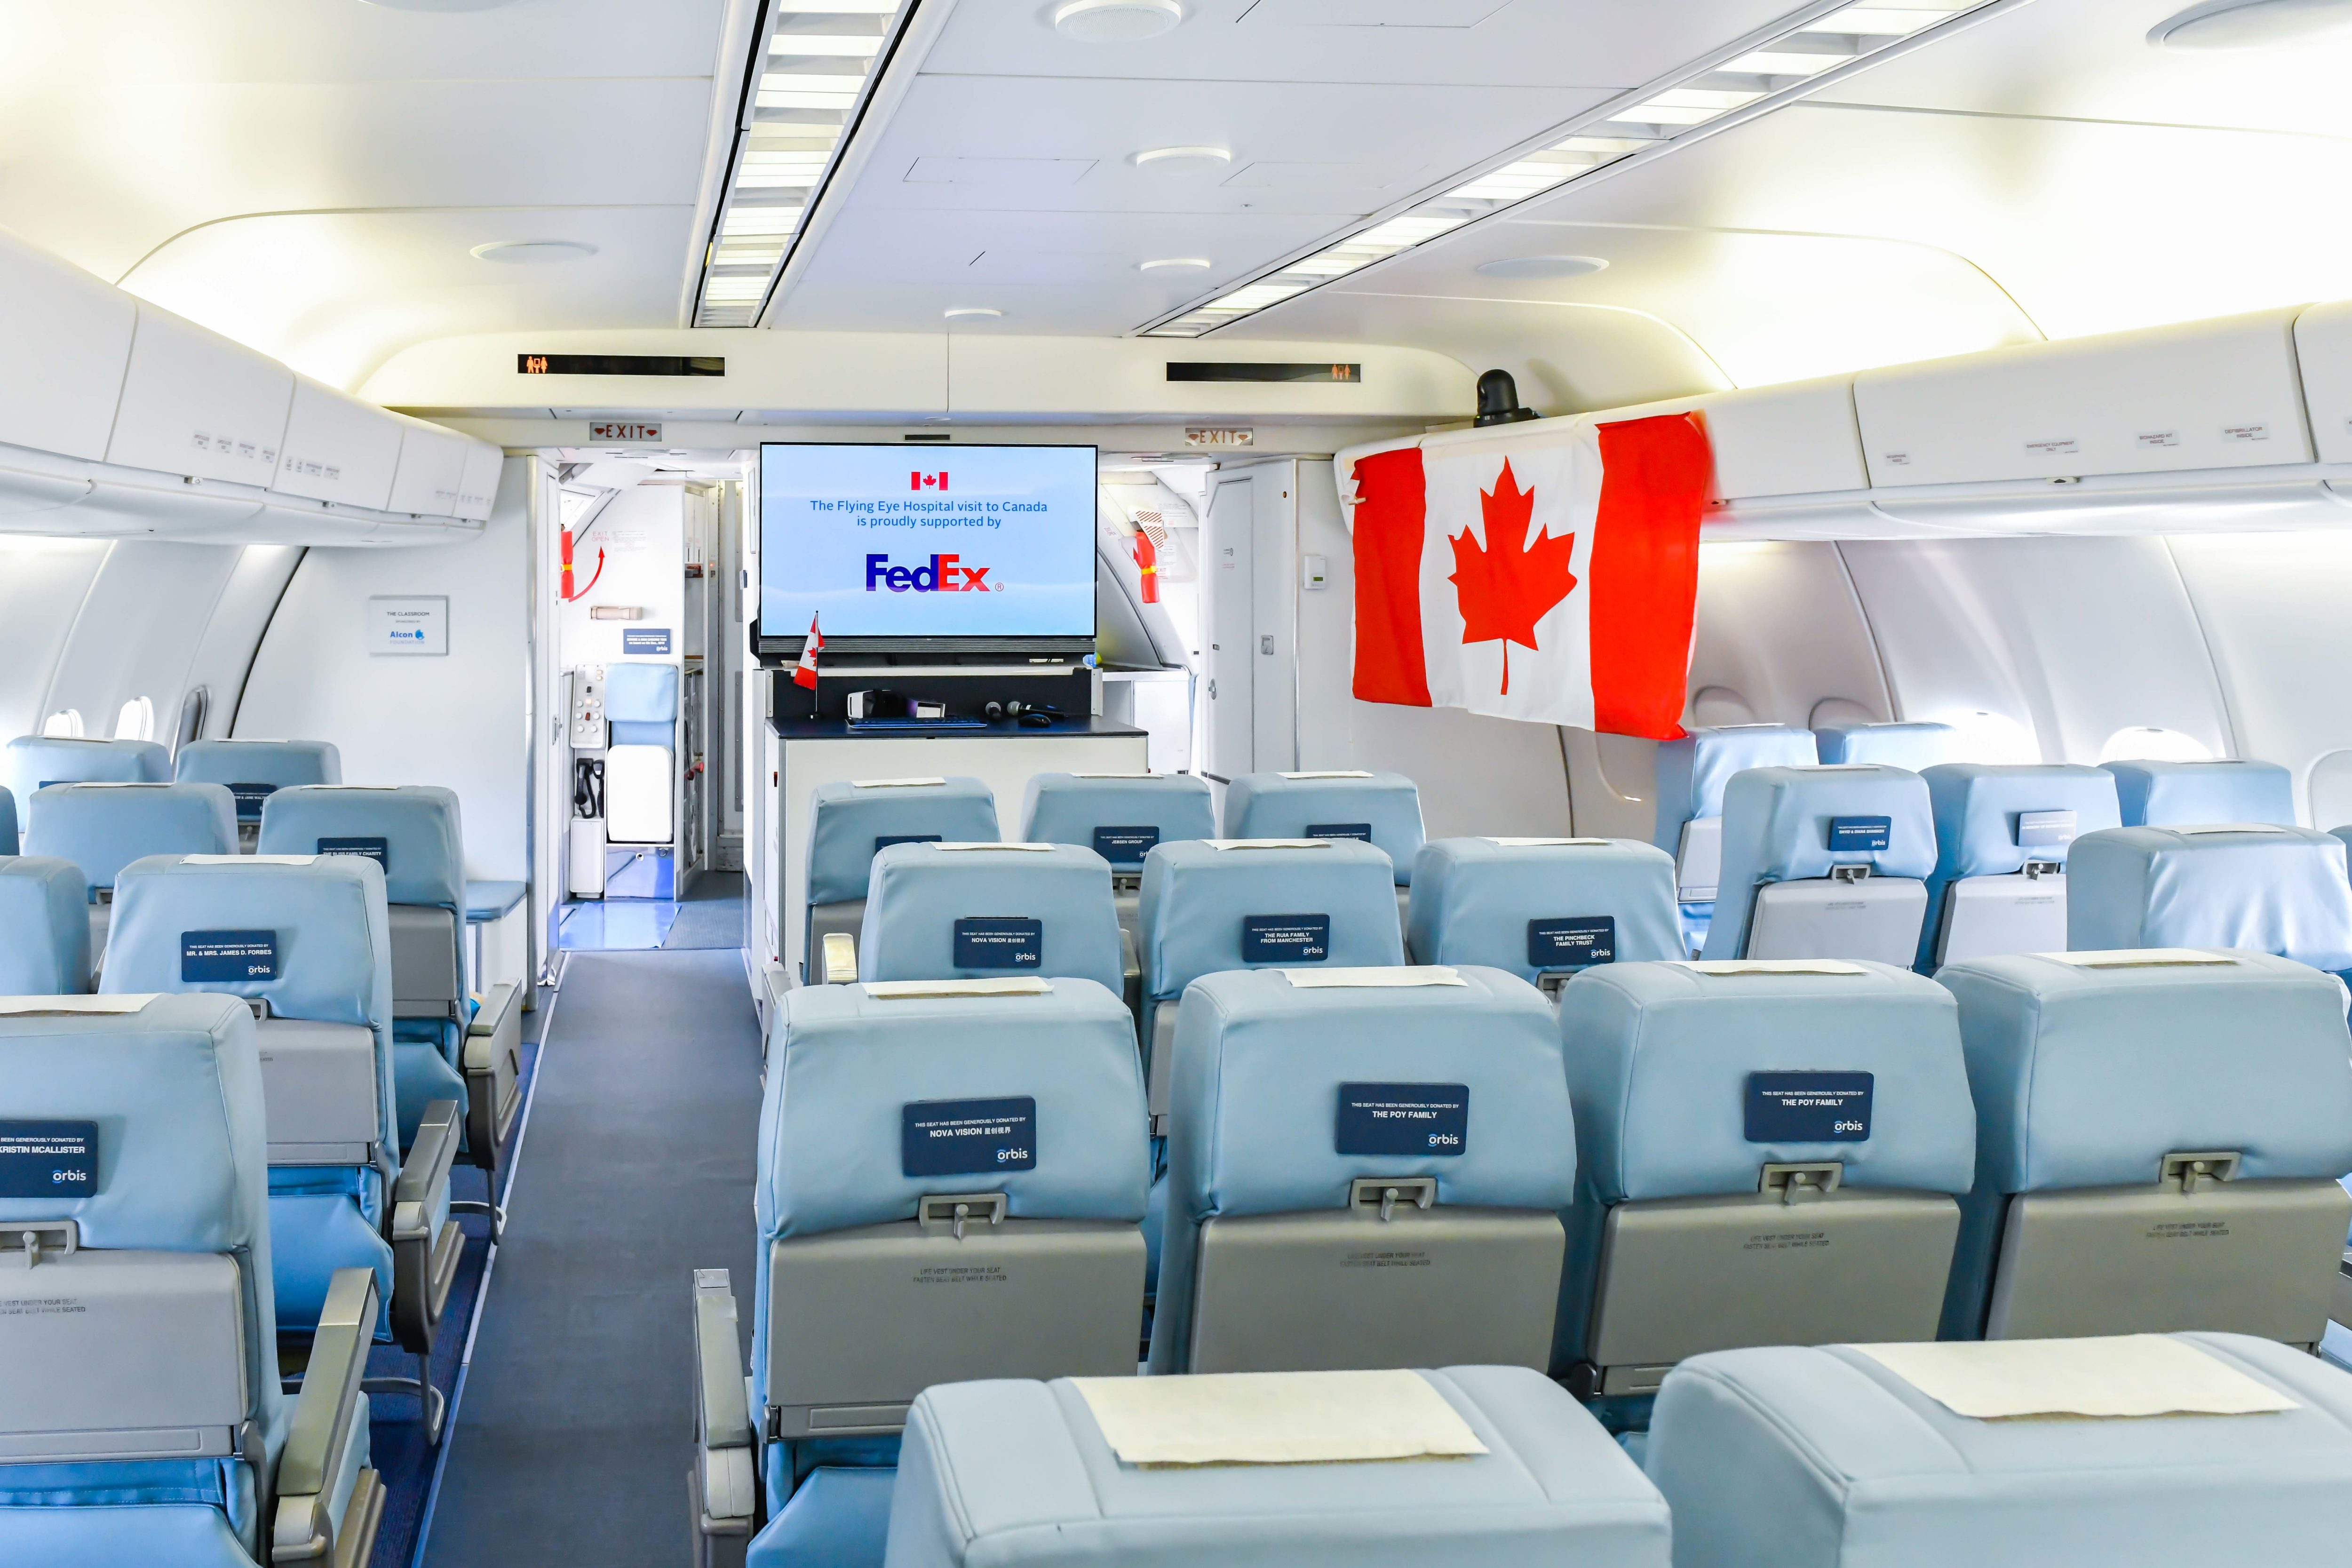 The Hospital's classroom, seen here, can seat 46, and is used for training purposes as well as viewing ongoing surgeries on-board. Rob Reyno Photo